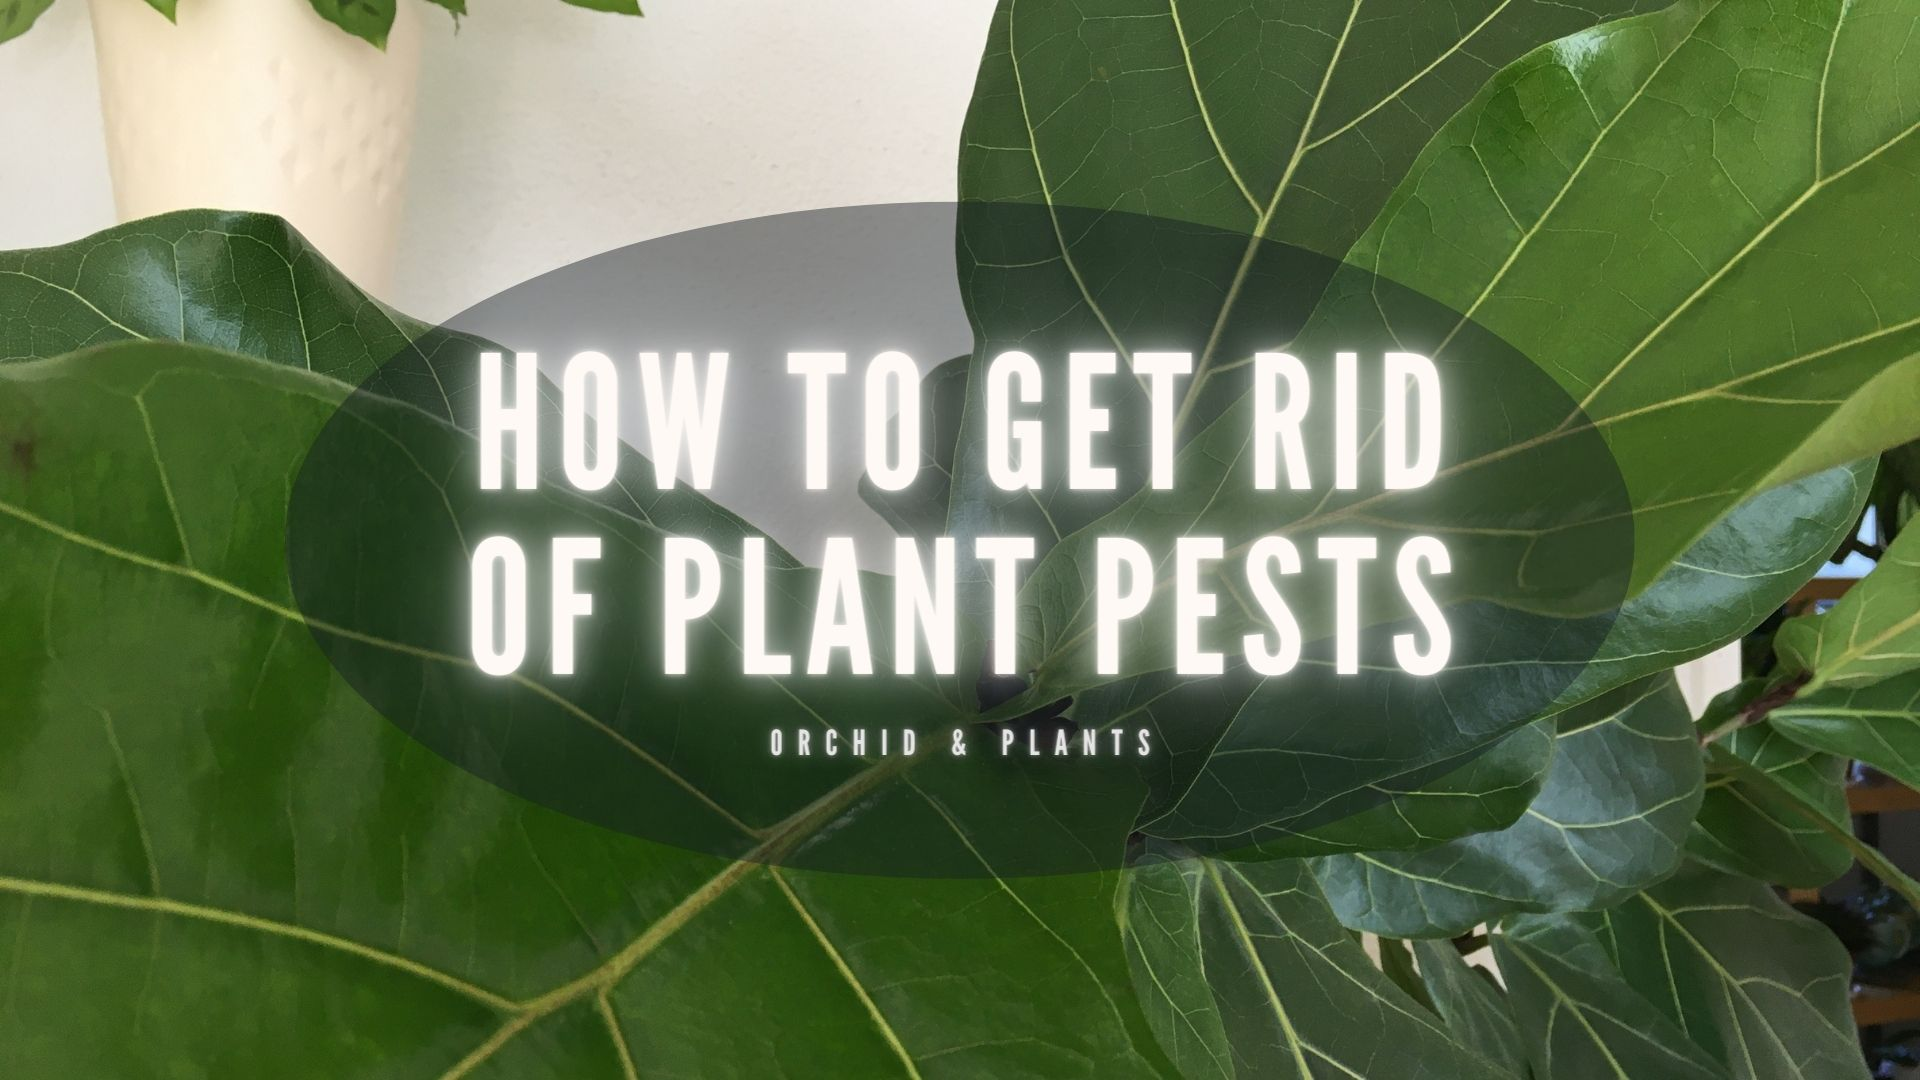 HOW TO GET RID OF PLANT PESTS